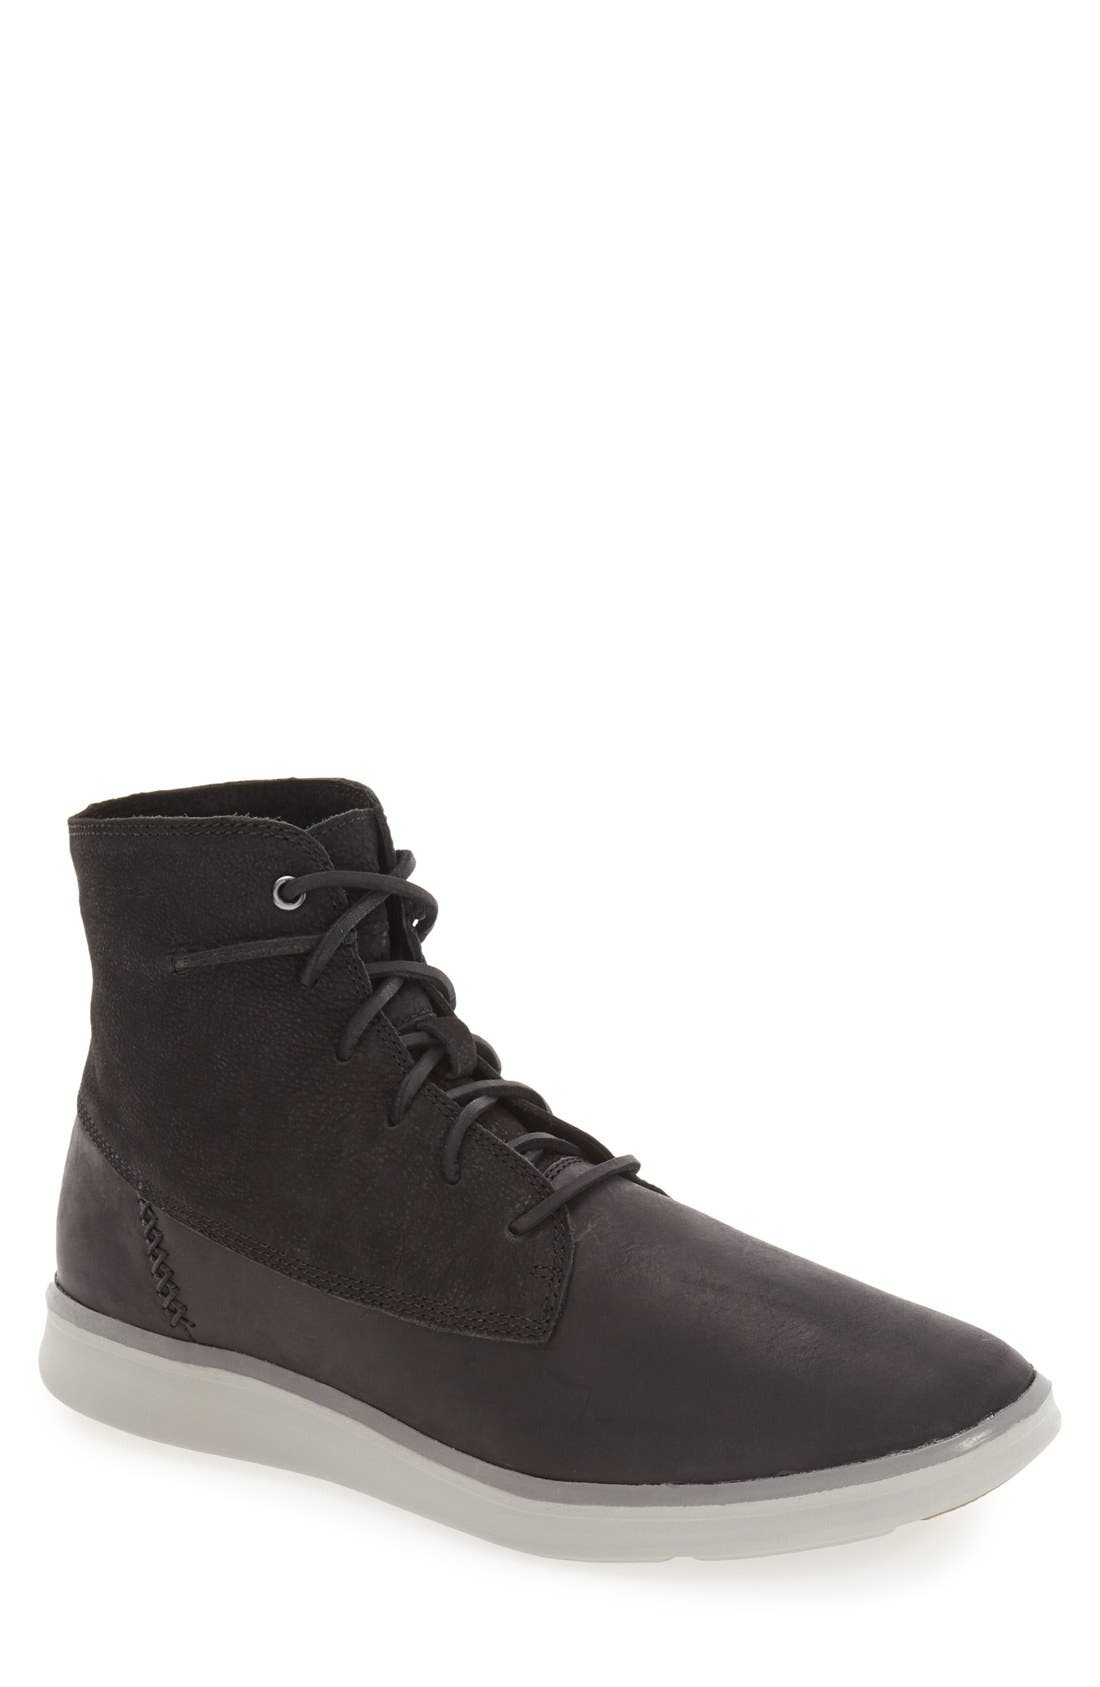 Main Image - UGG® 'Lamont' High Top Sneaker (Men)